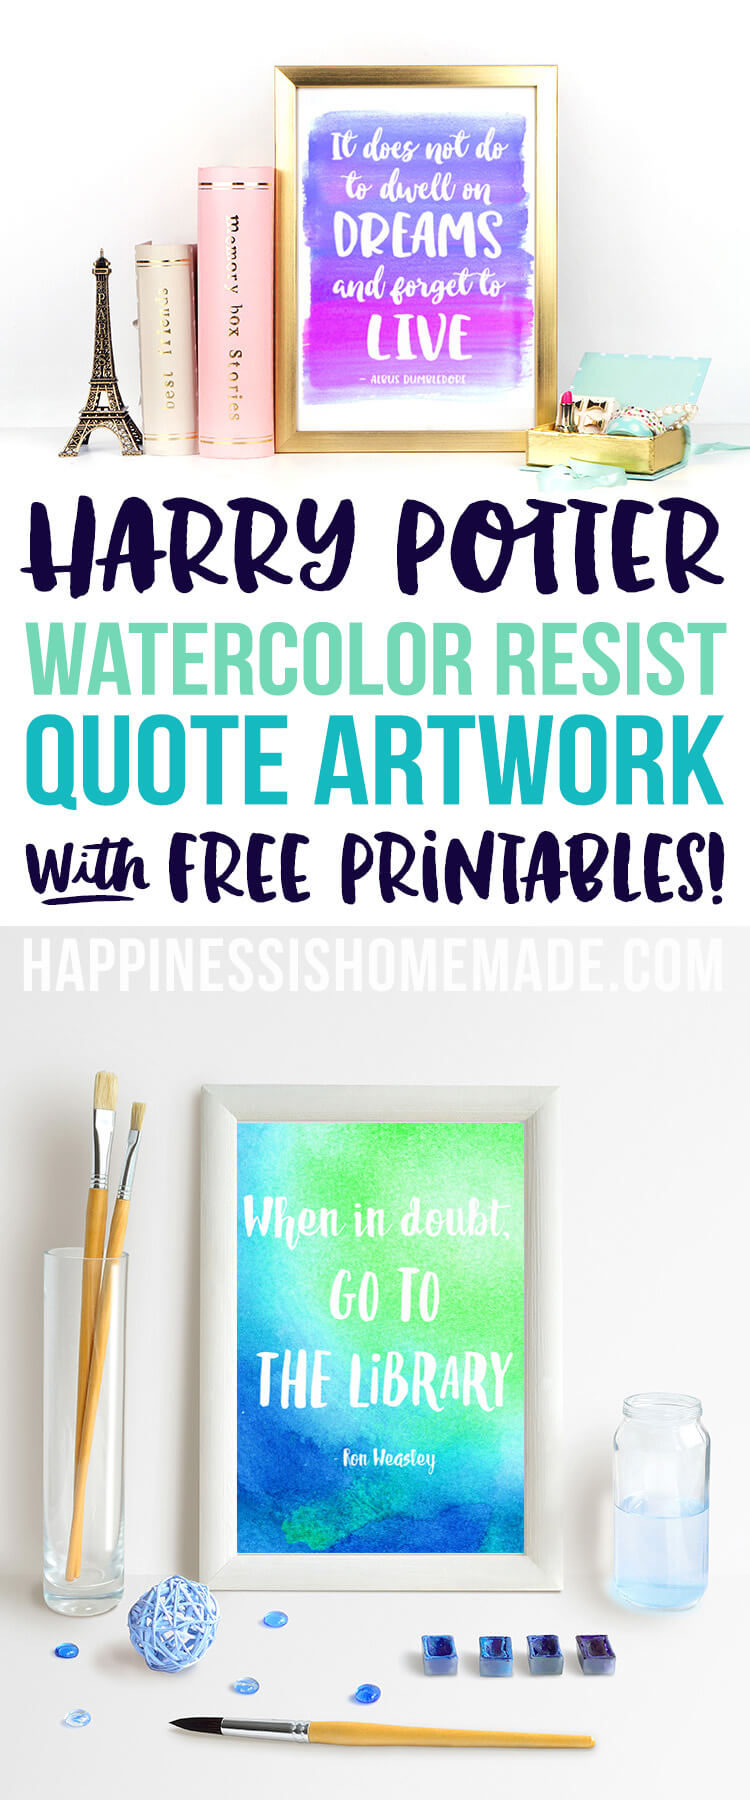 photograph regarding Printable Harry Potter Quotes referred to as Watercolor Resist Harry Potter Quotations - Pleasure is Home made